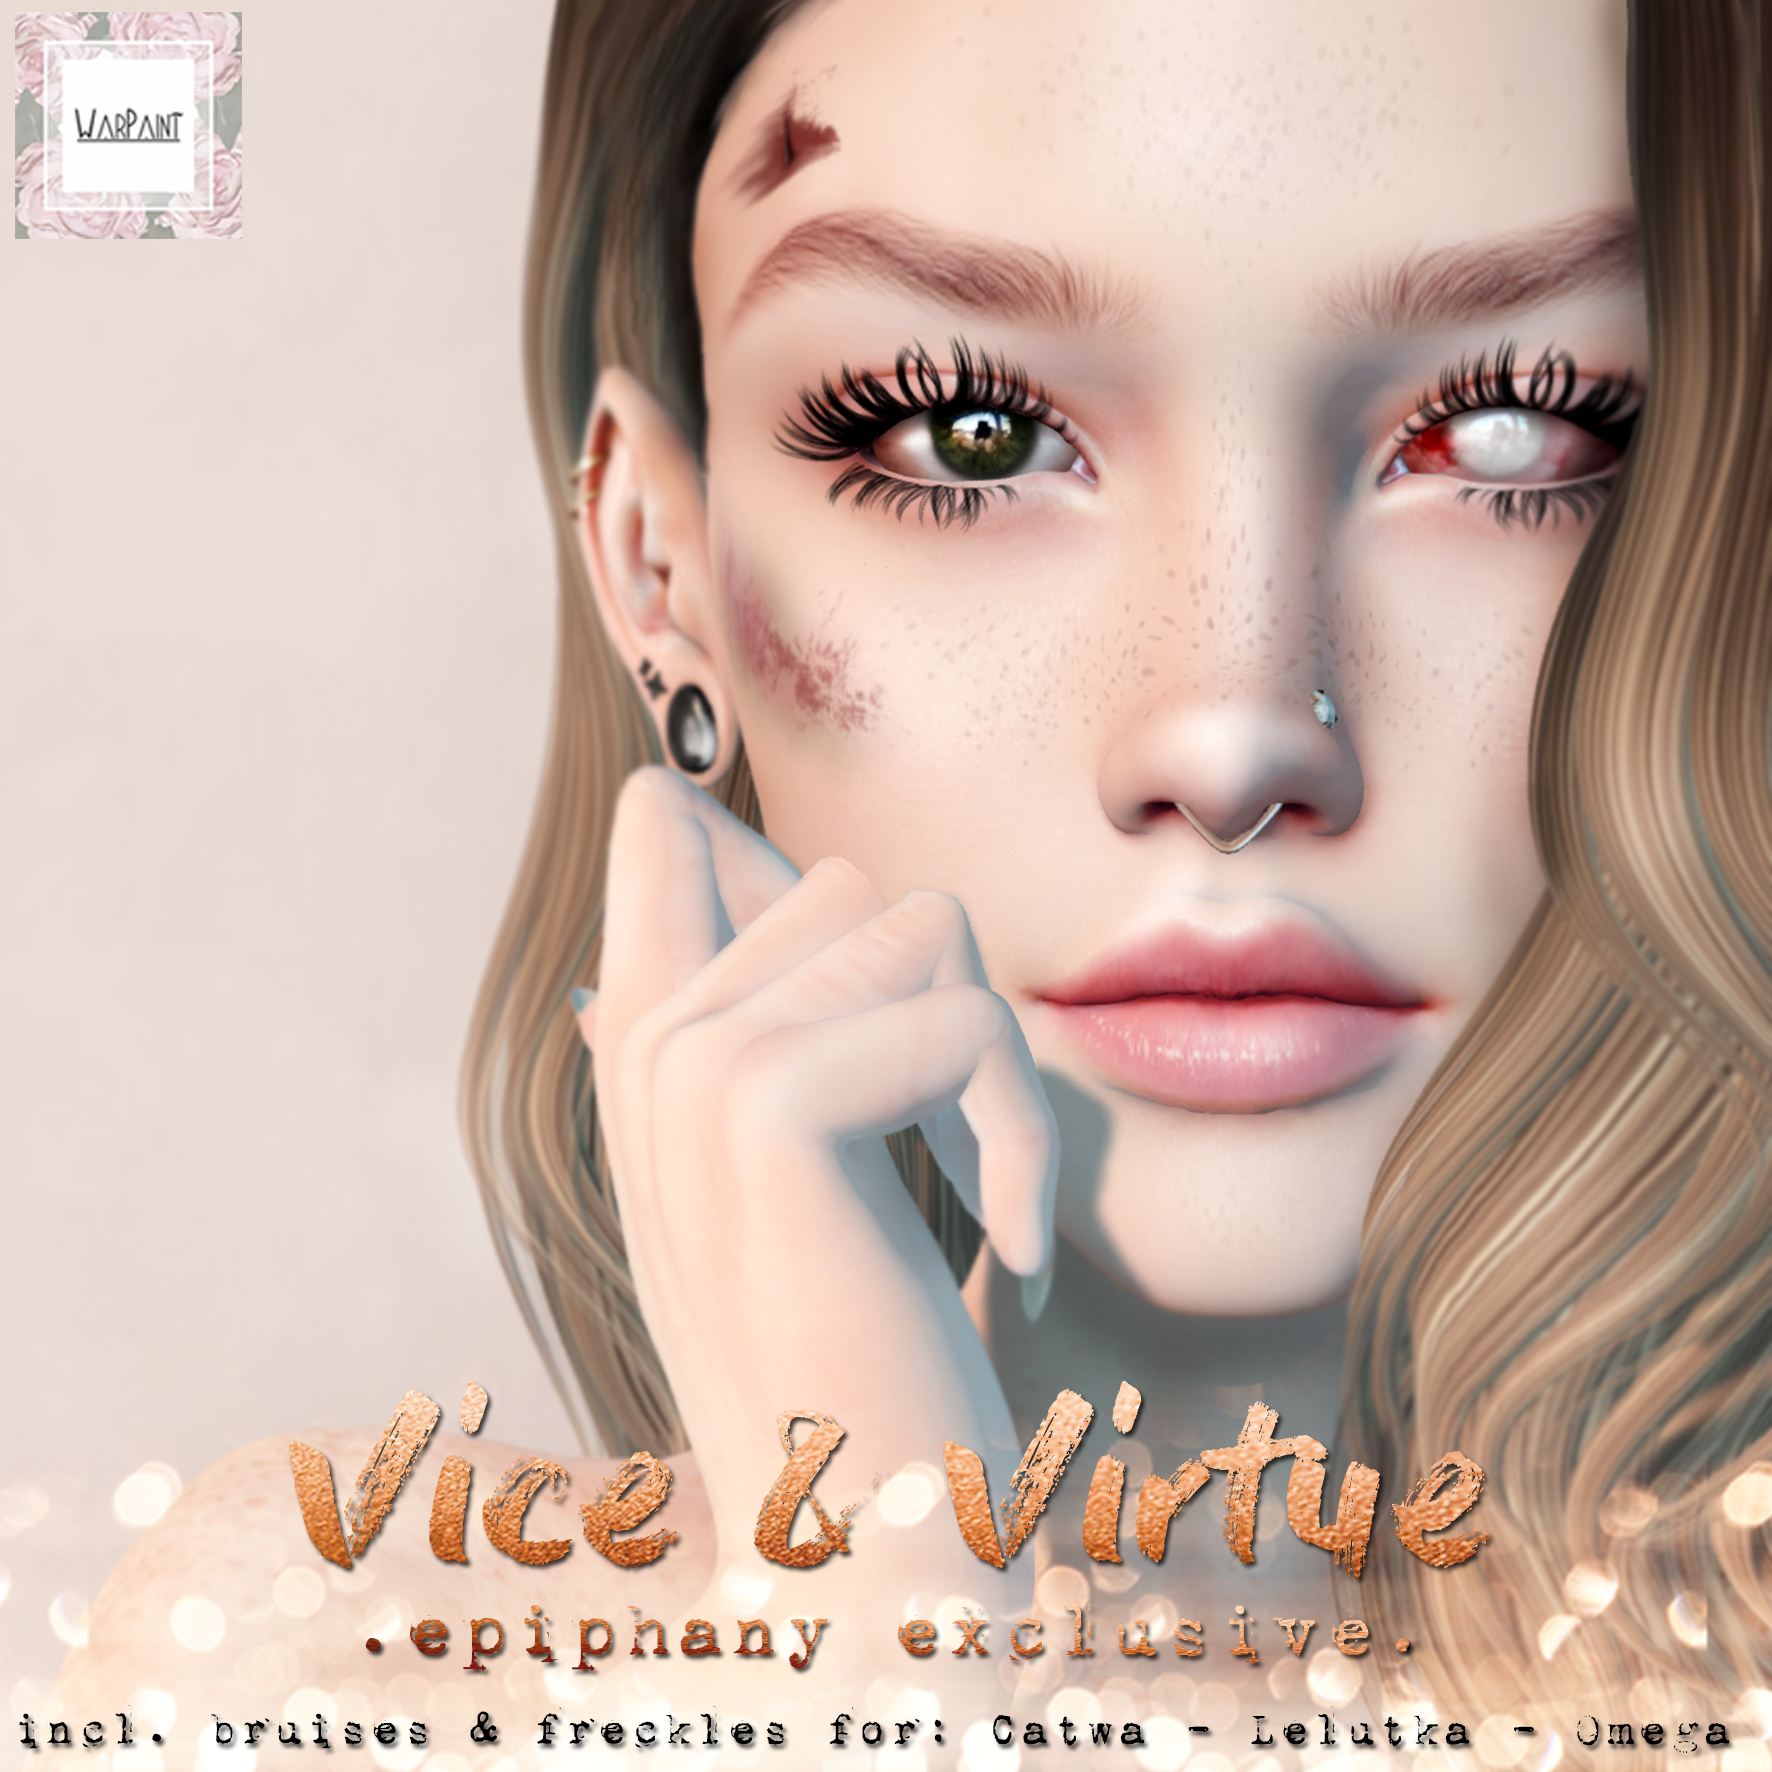 Vice&Virtue Exclusive ad.png